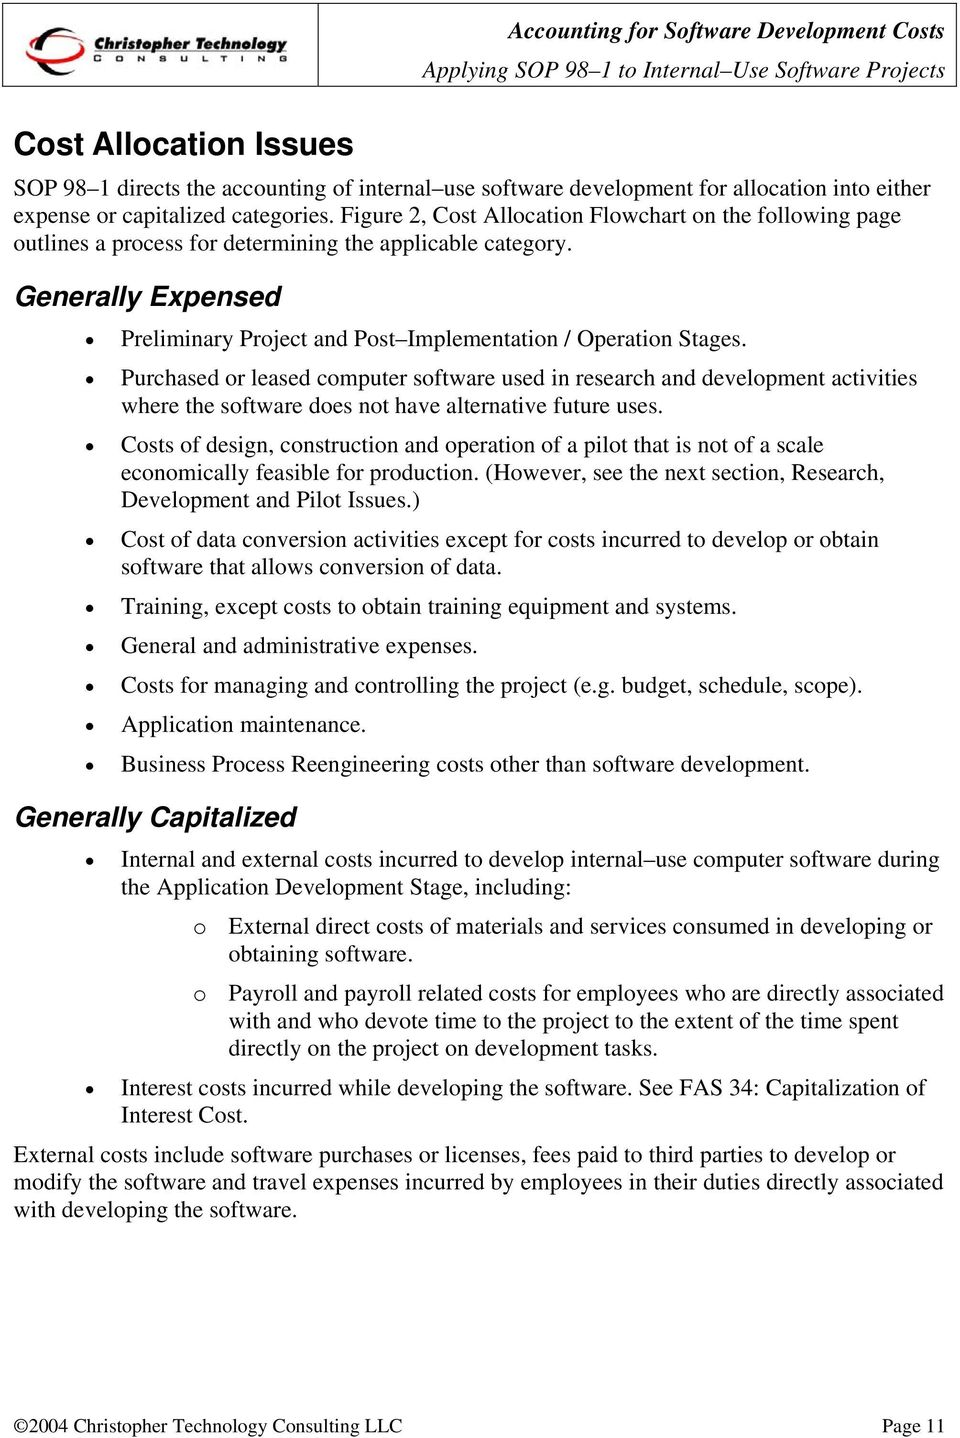 Accounting for Software  Development Costs - PDF